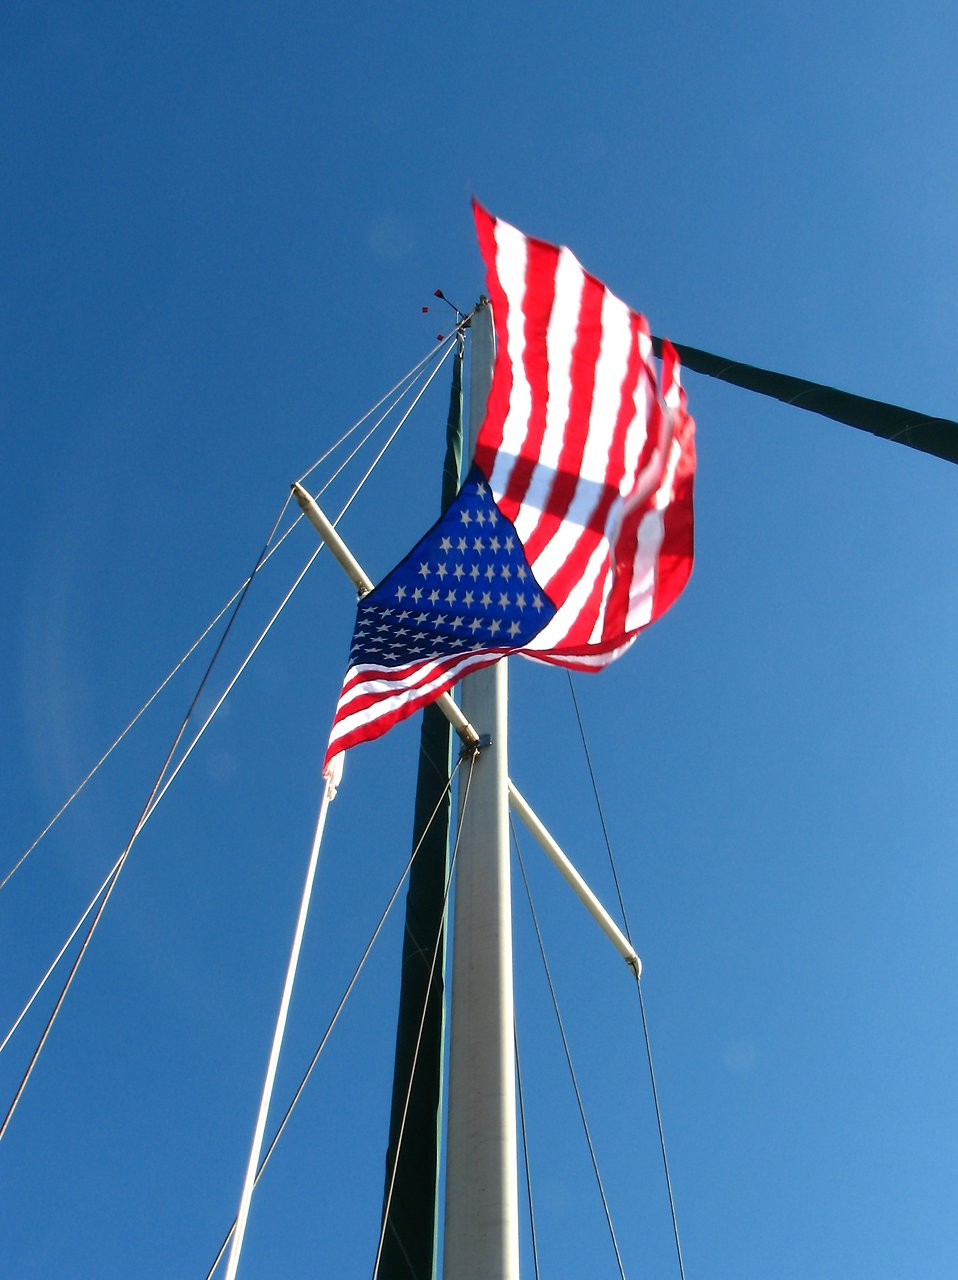 A flag flying on the mast of a sailboat : Free Stock Photo